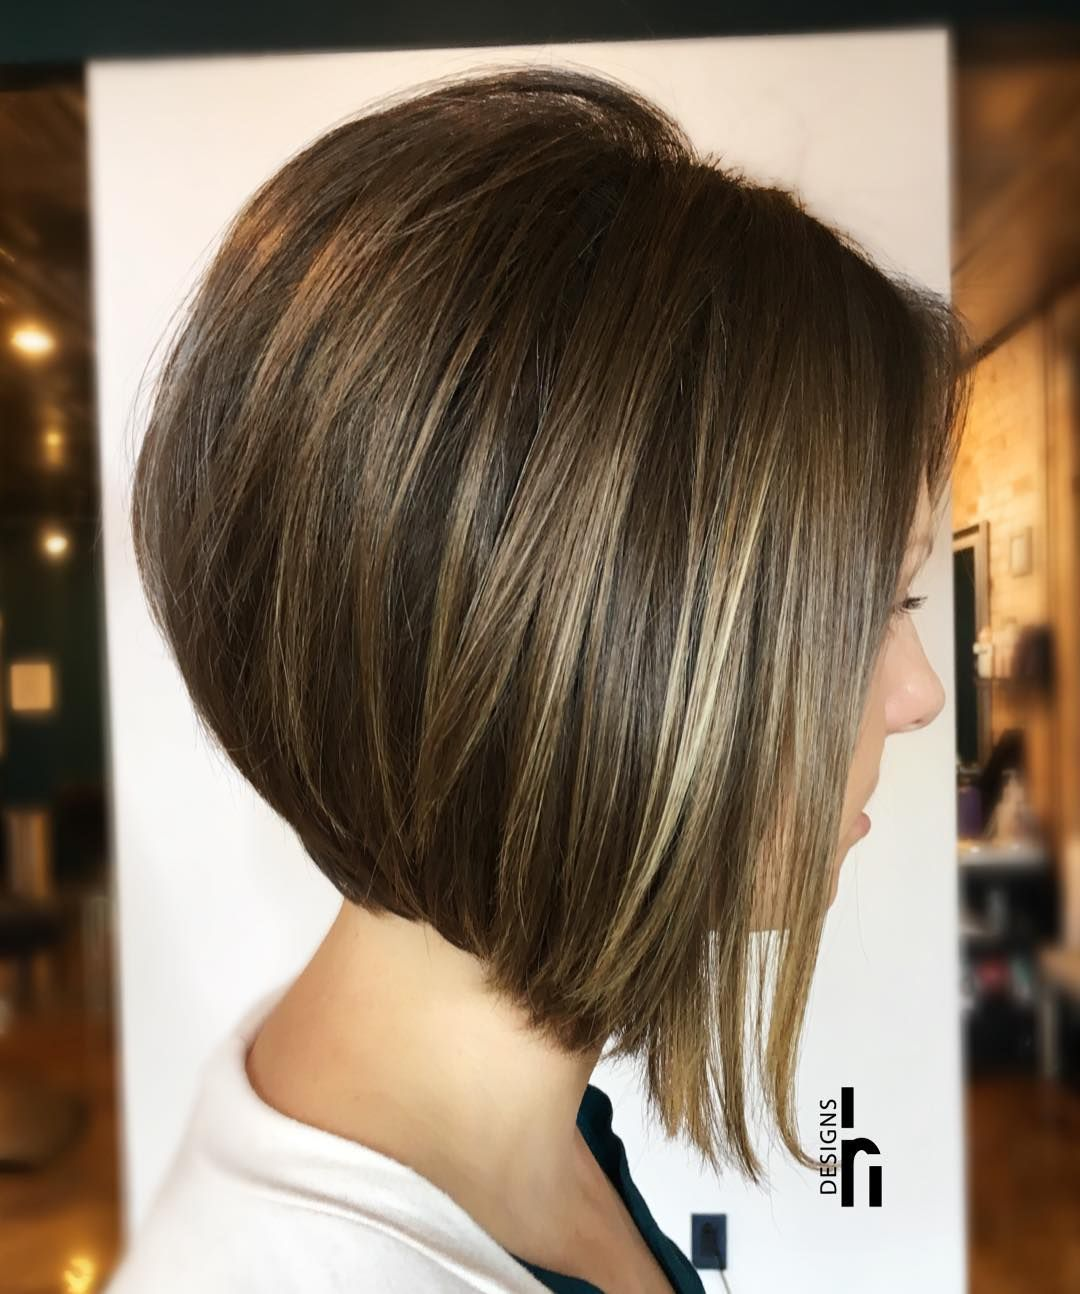 Braidsmaid Hairstyles Updos Thicking Hair Products Straighting Hair In 2020 Graduated Bob Hairstyles Inverted Bob Haircuts Hair Styles